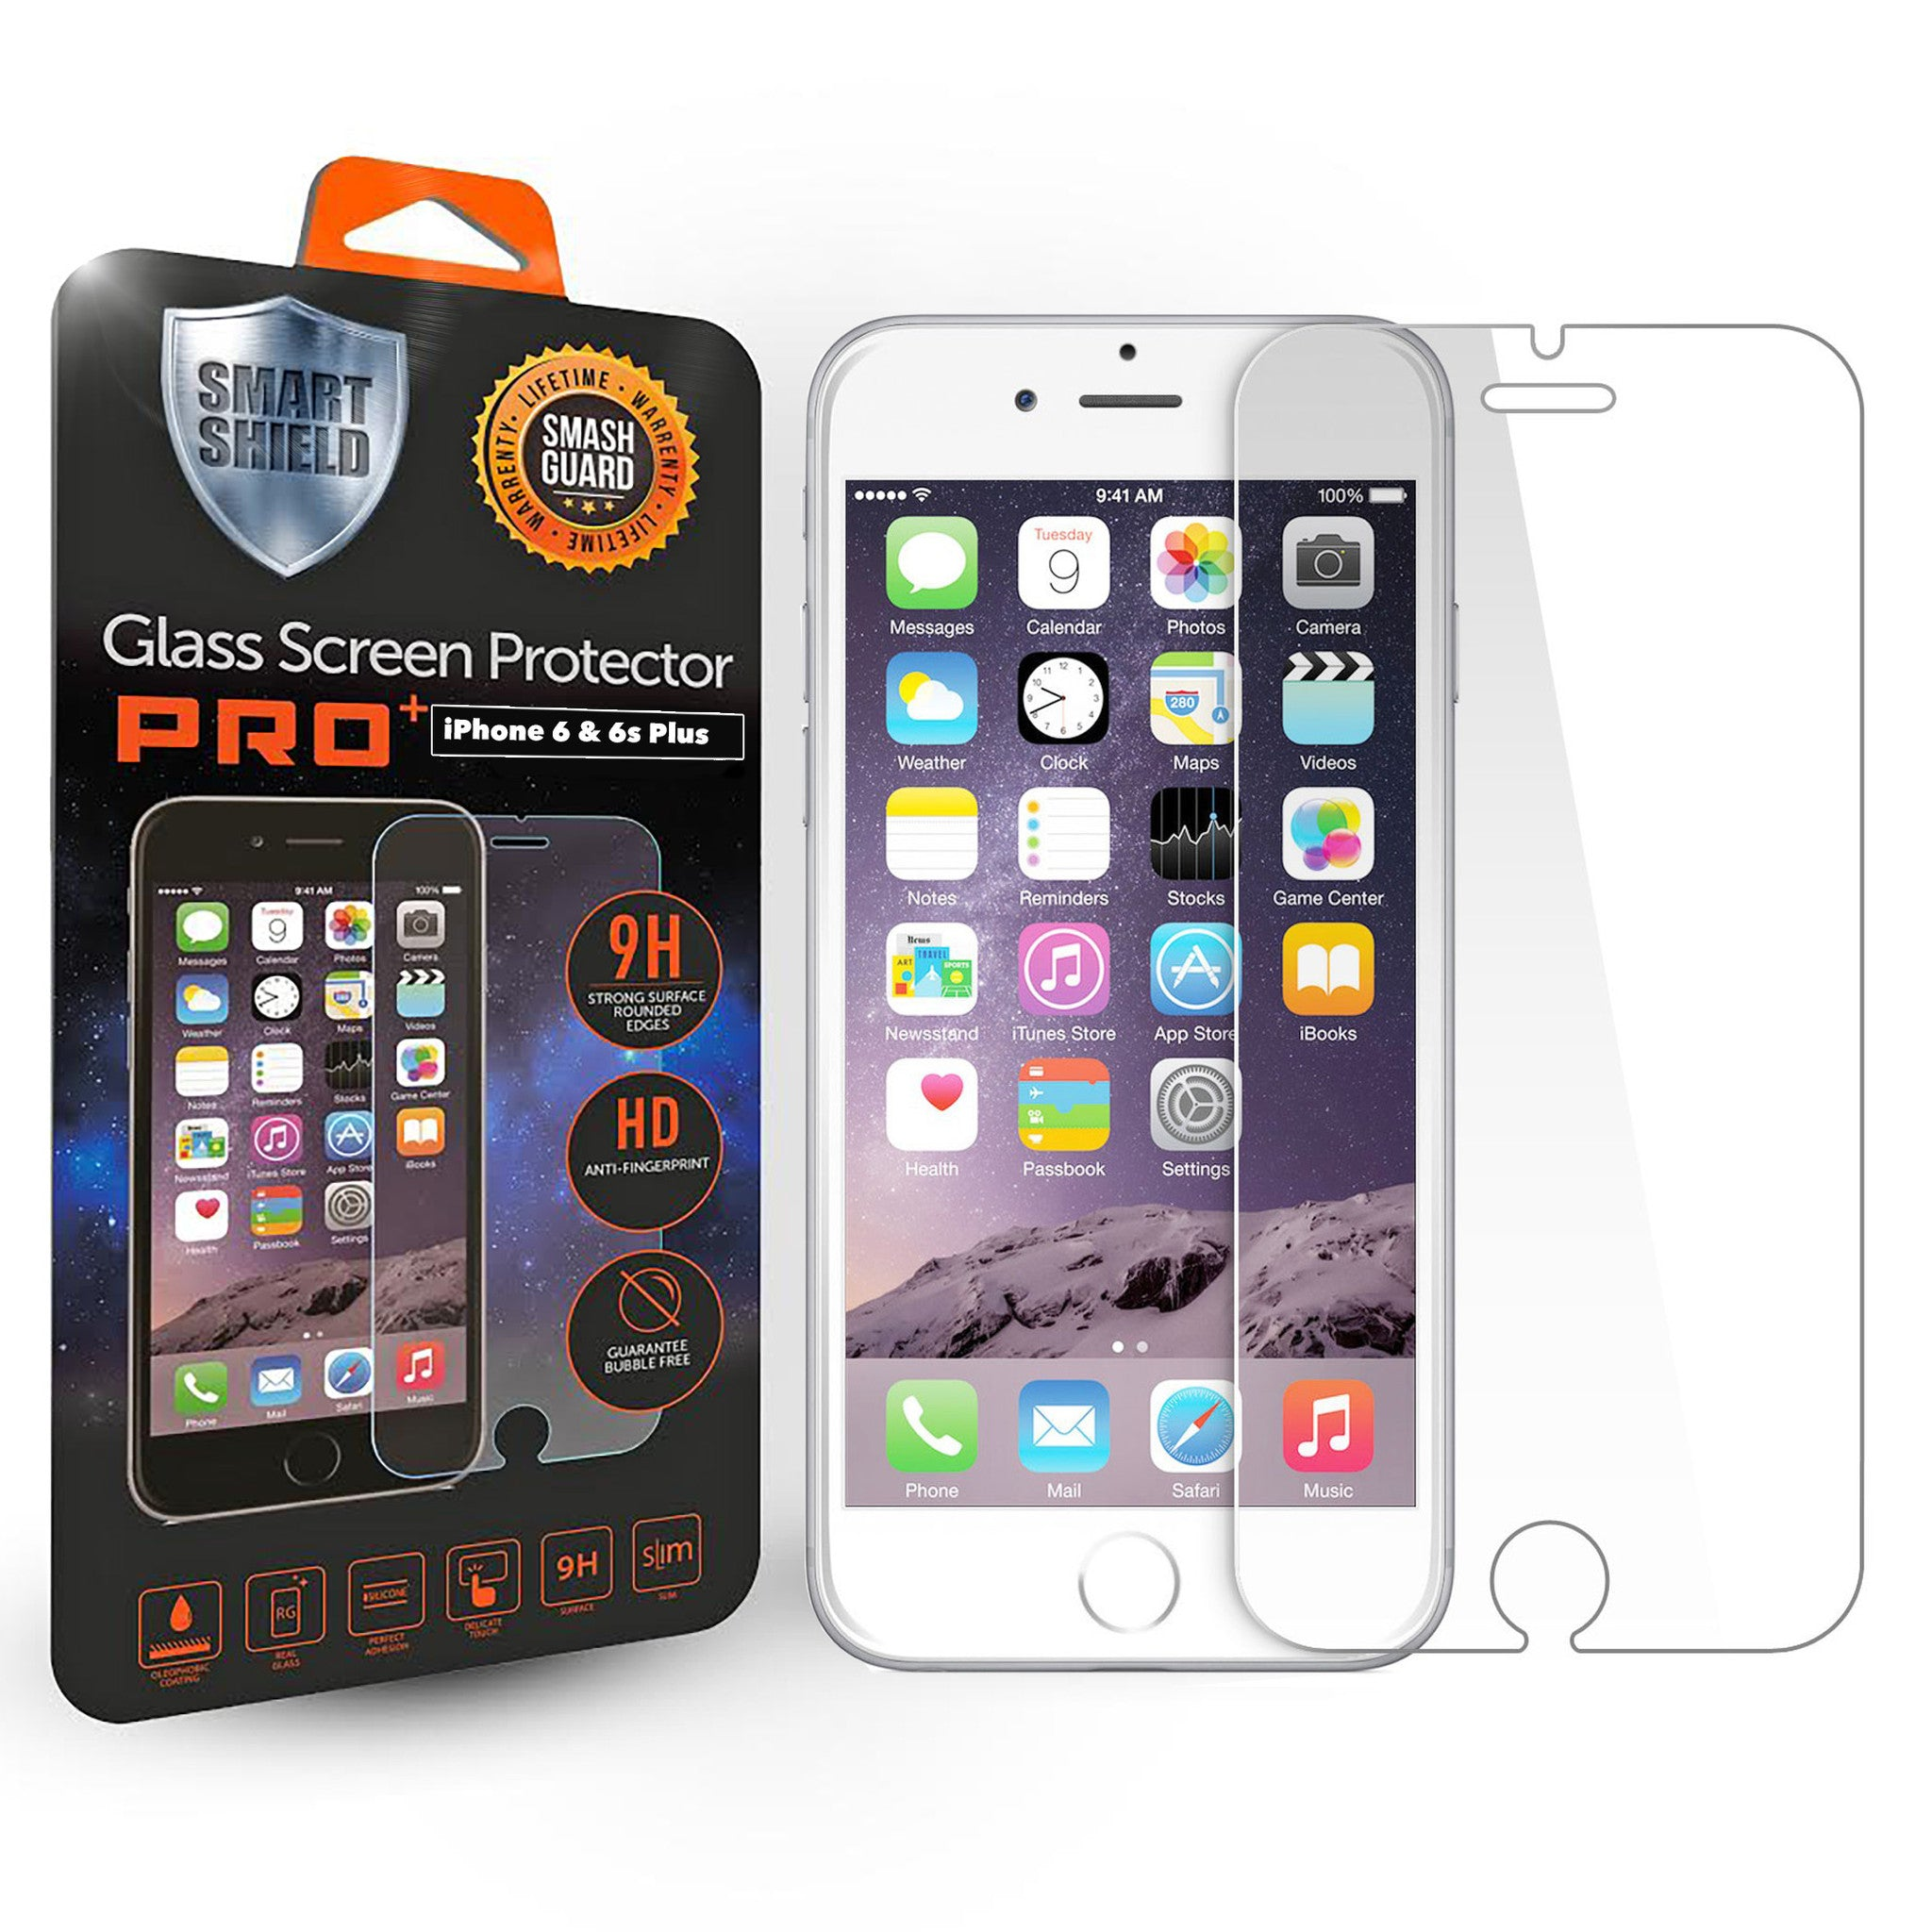 iPhone 6 Plus / 6s Plus Tempered Glass Screen Protector - Smart Shield - 1